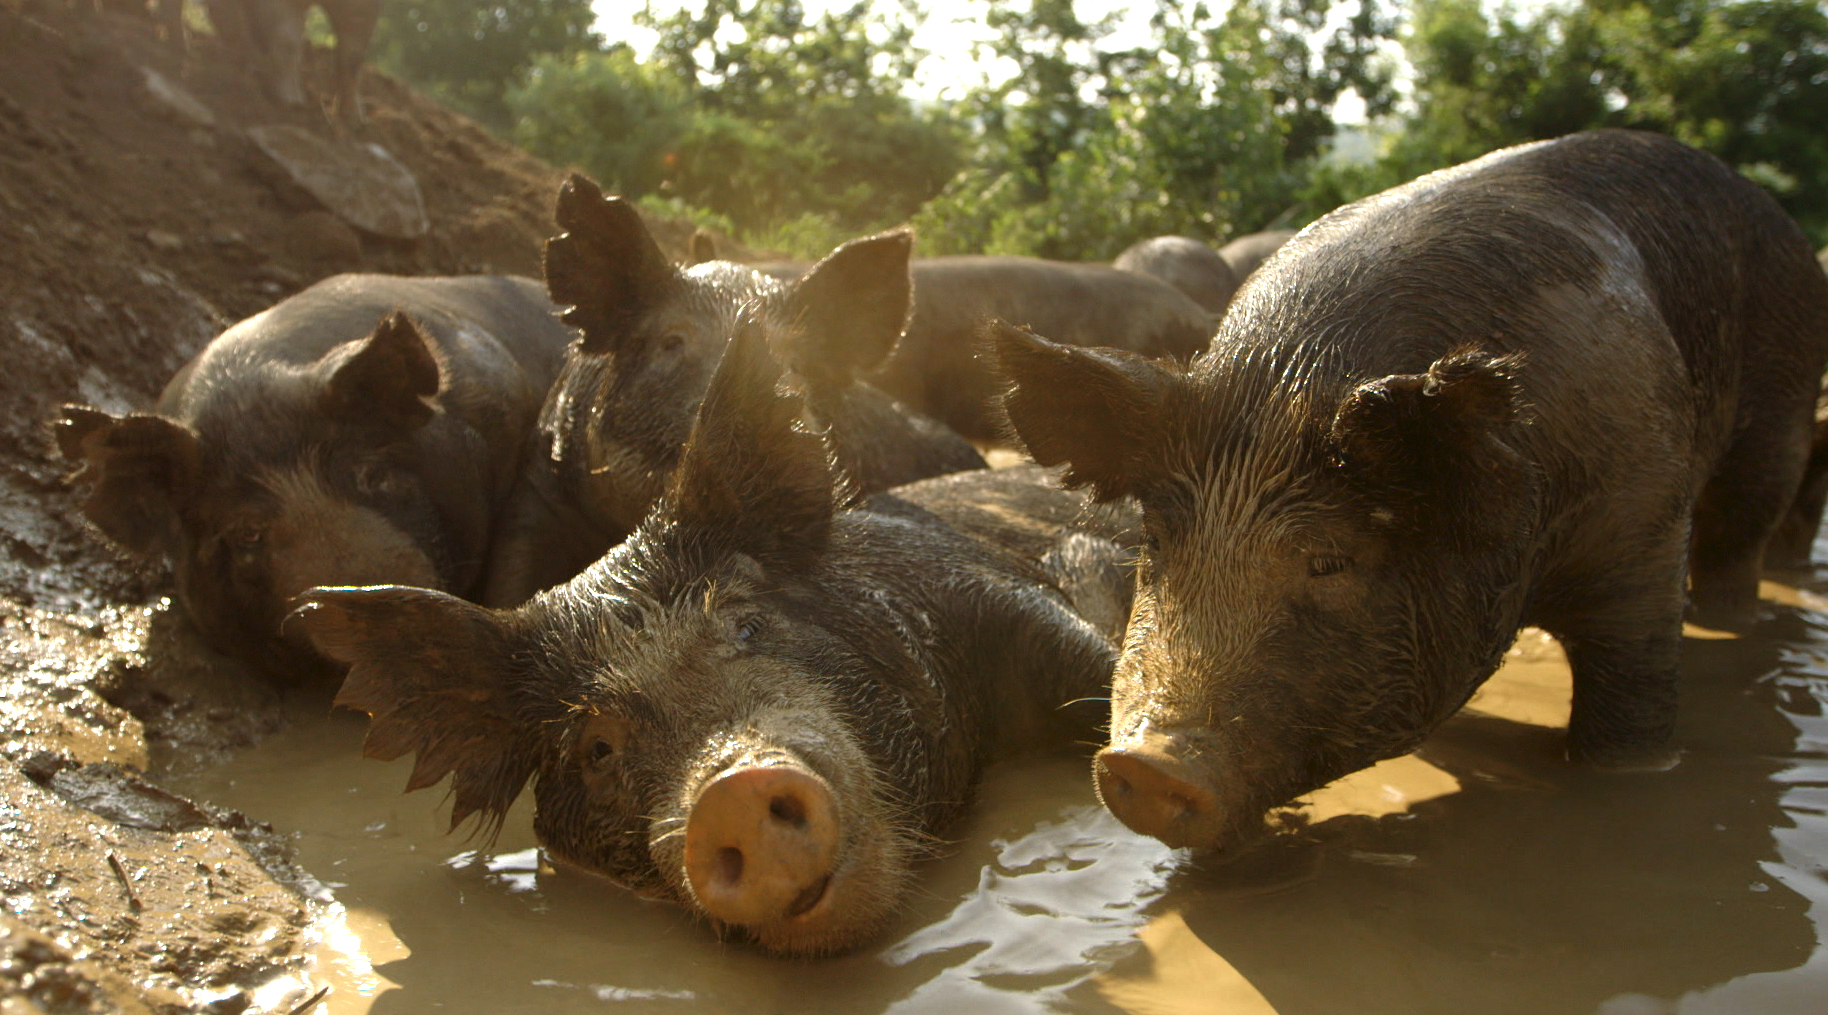 The mud wallow scene displays pure pig joy, an expression central to the film's message.